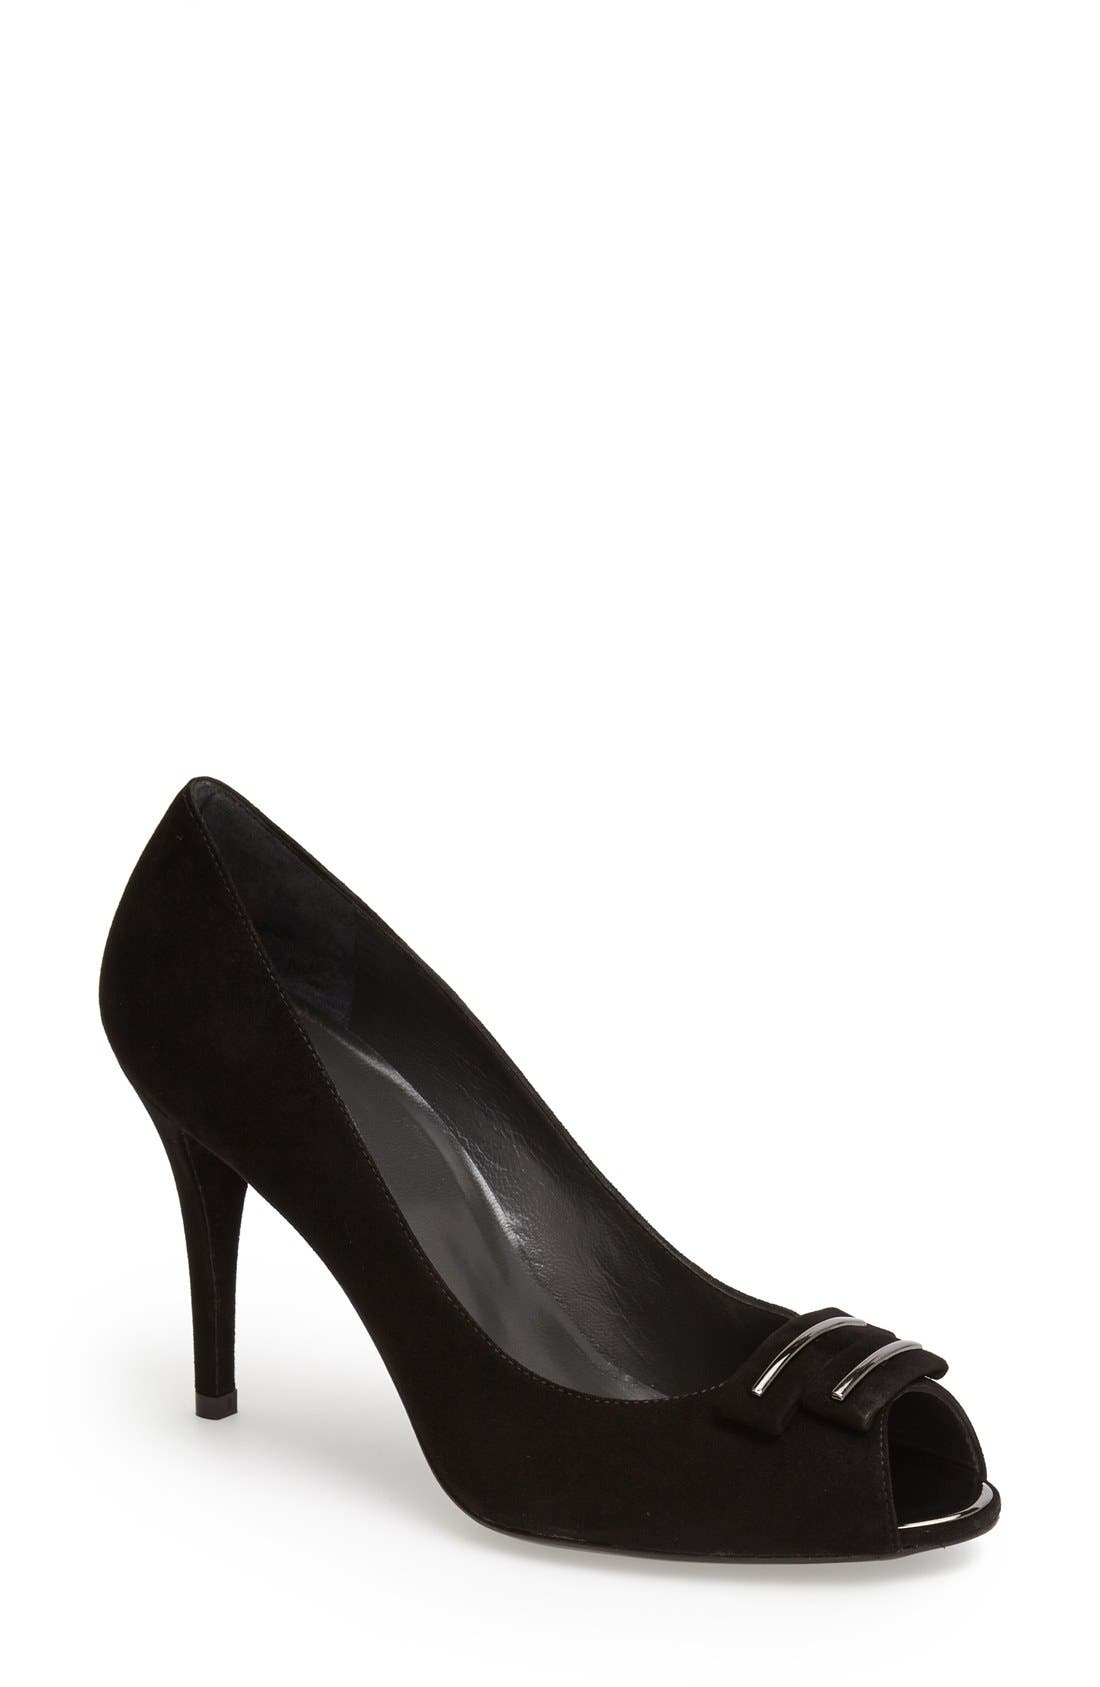 Main Image - Stuart Weitzman 'Baroque' Leather Pump (Women)